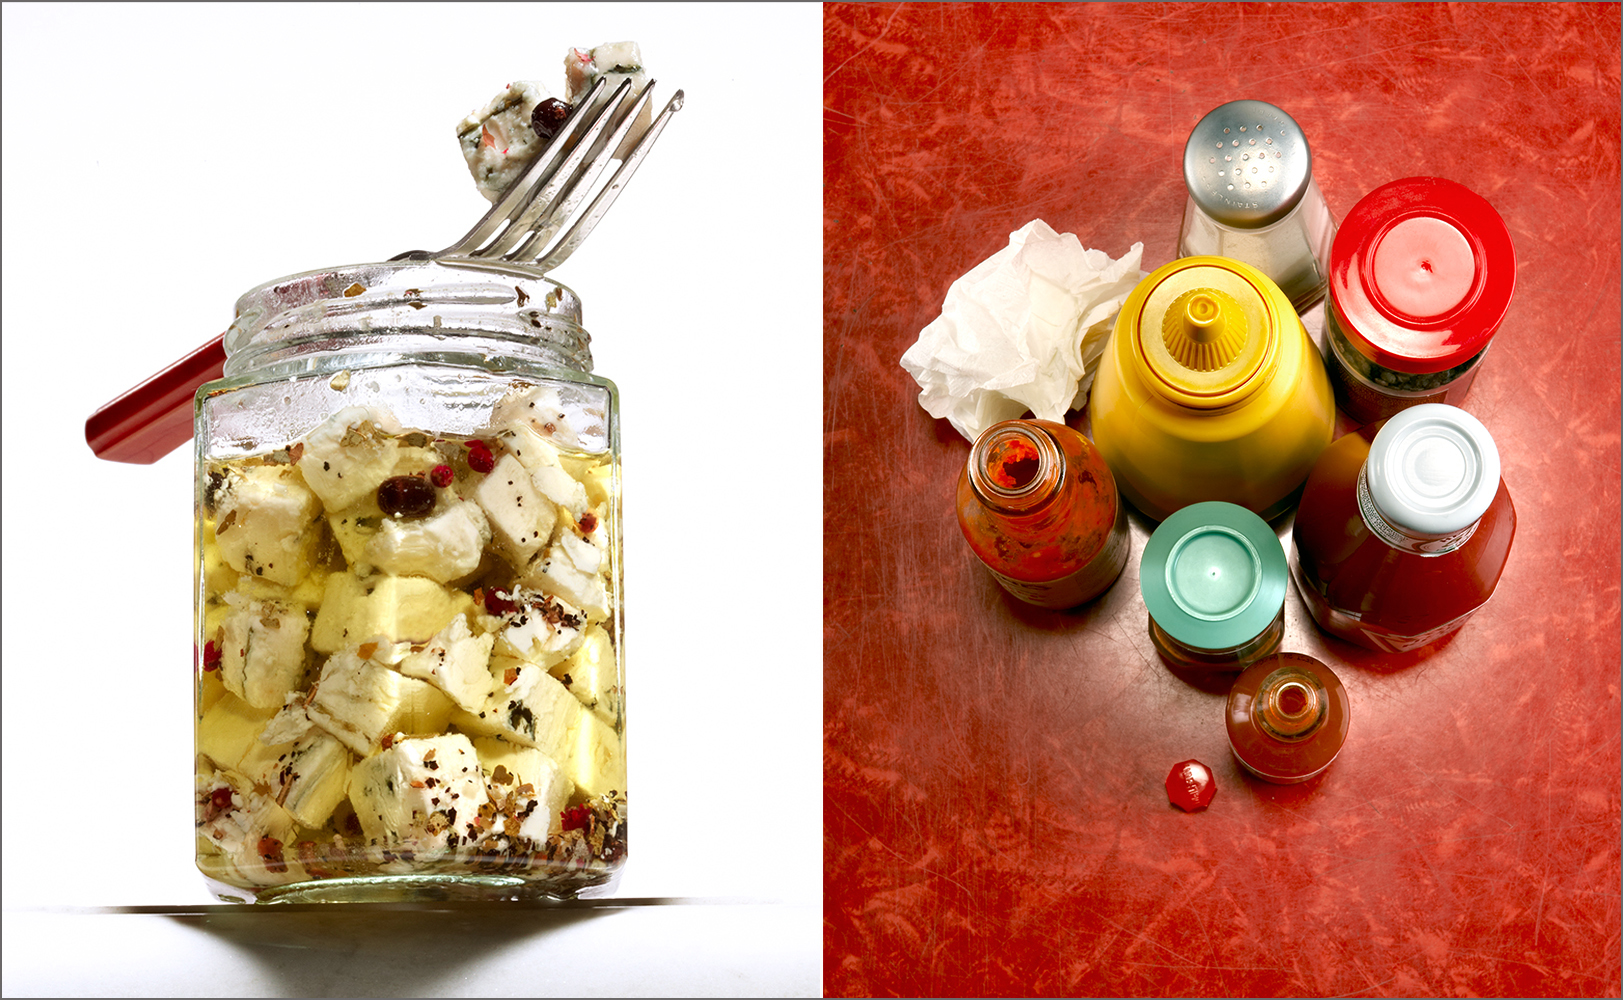 091211_feta_jar_1865_Pair.jpg